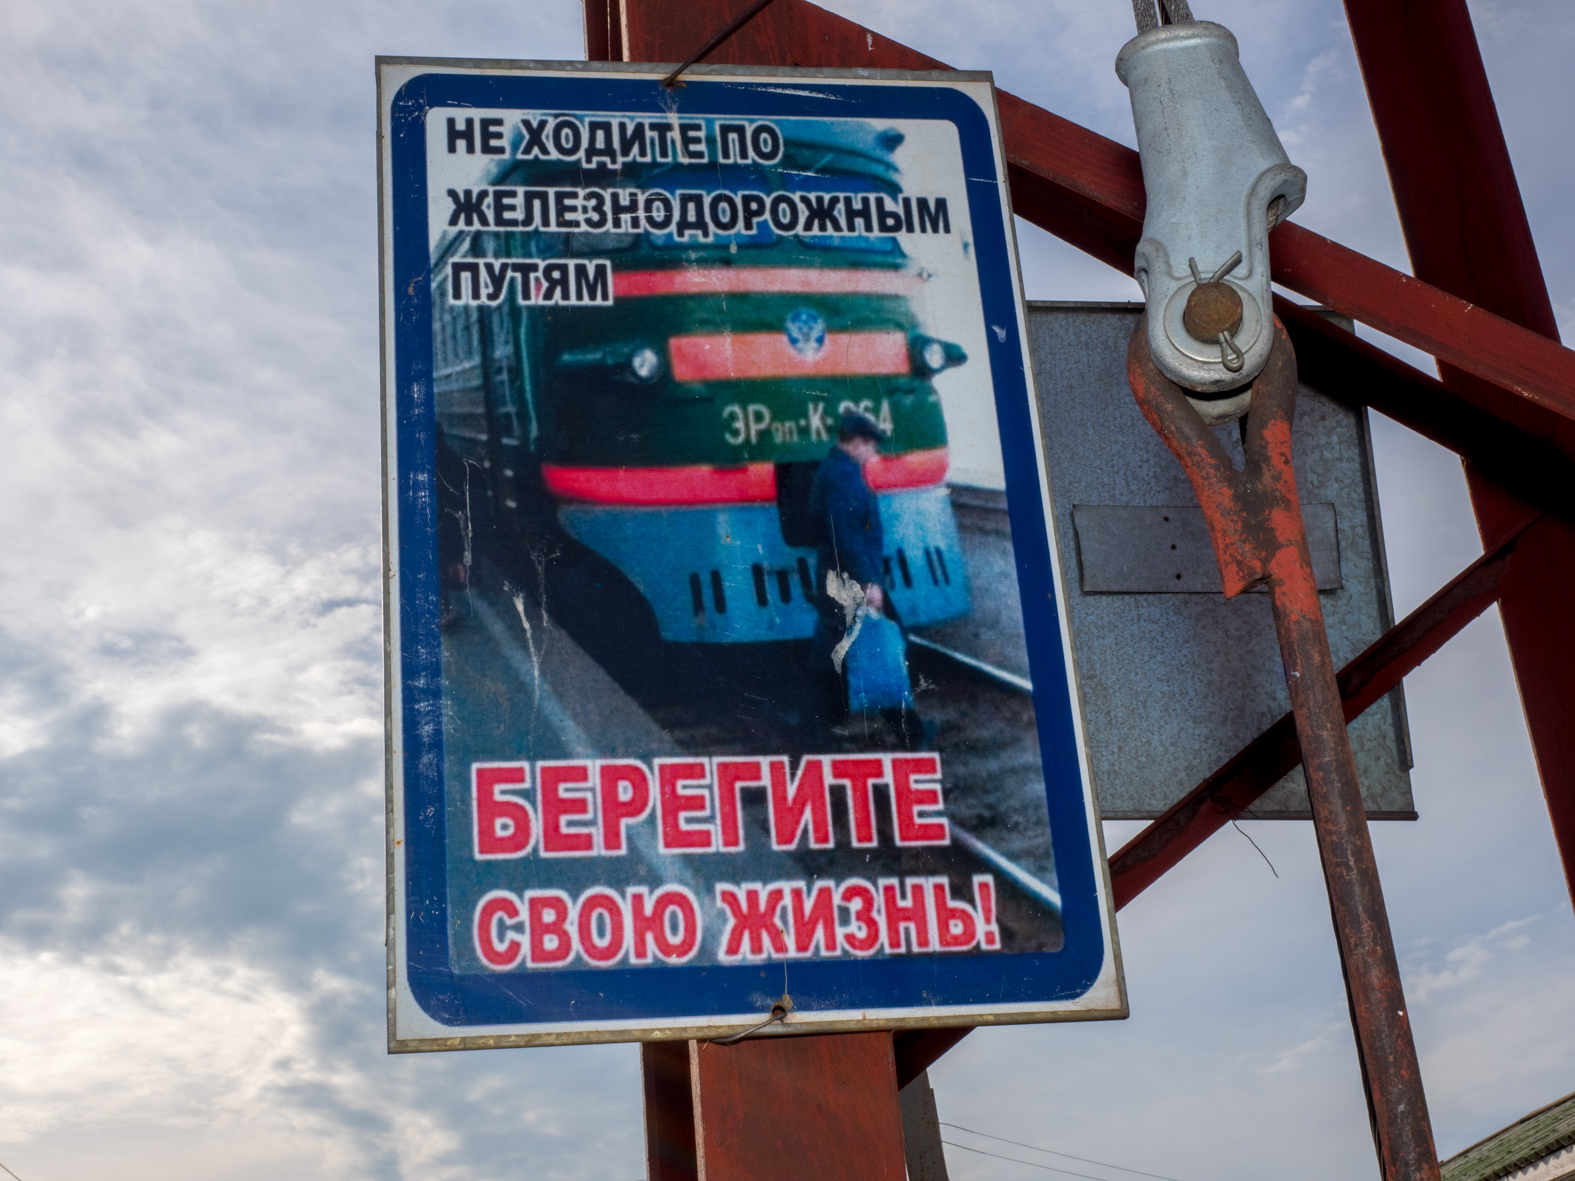 A warning sign for passengers on the Trans-Siberian Railway from Moscow-Vladivostok. Spanning a length of 9,289km, it's the longest uninterrupted single country train journey in the world. It has connected Moscow with Vladivostok since 1916, and is still being expanded. It was built between 1891 and 1916 under the supervision of Russian government ministers personally appointed by Tsar Alexander III and his son, the Tsarevich Nicholas (later Tsar Nicholas II).